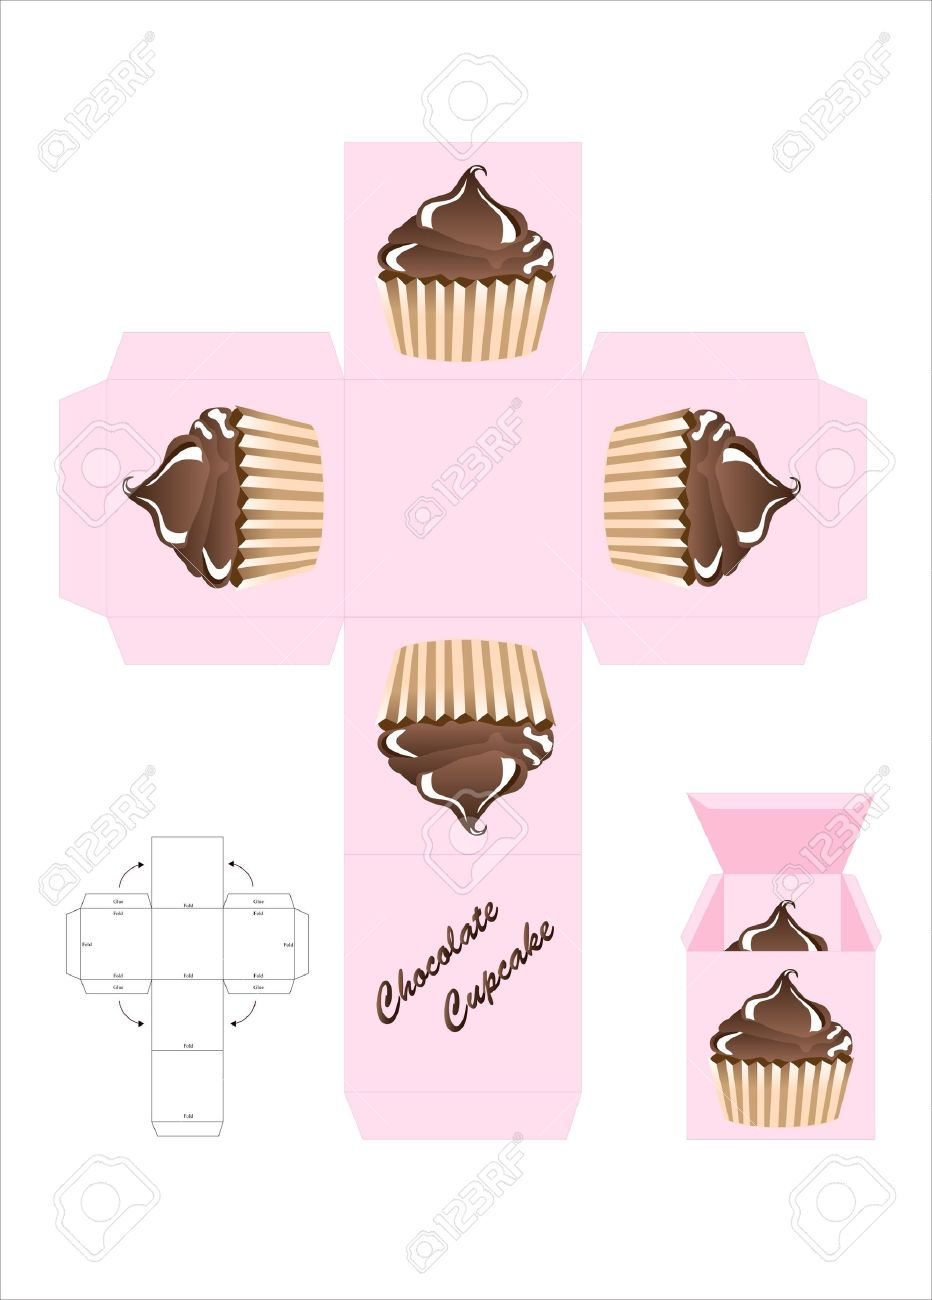 A Template For A Cupcake Gift Box. EPS10 Vector Format. Royalty Free ...